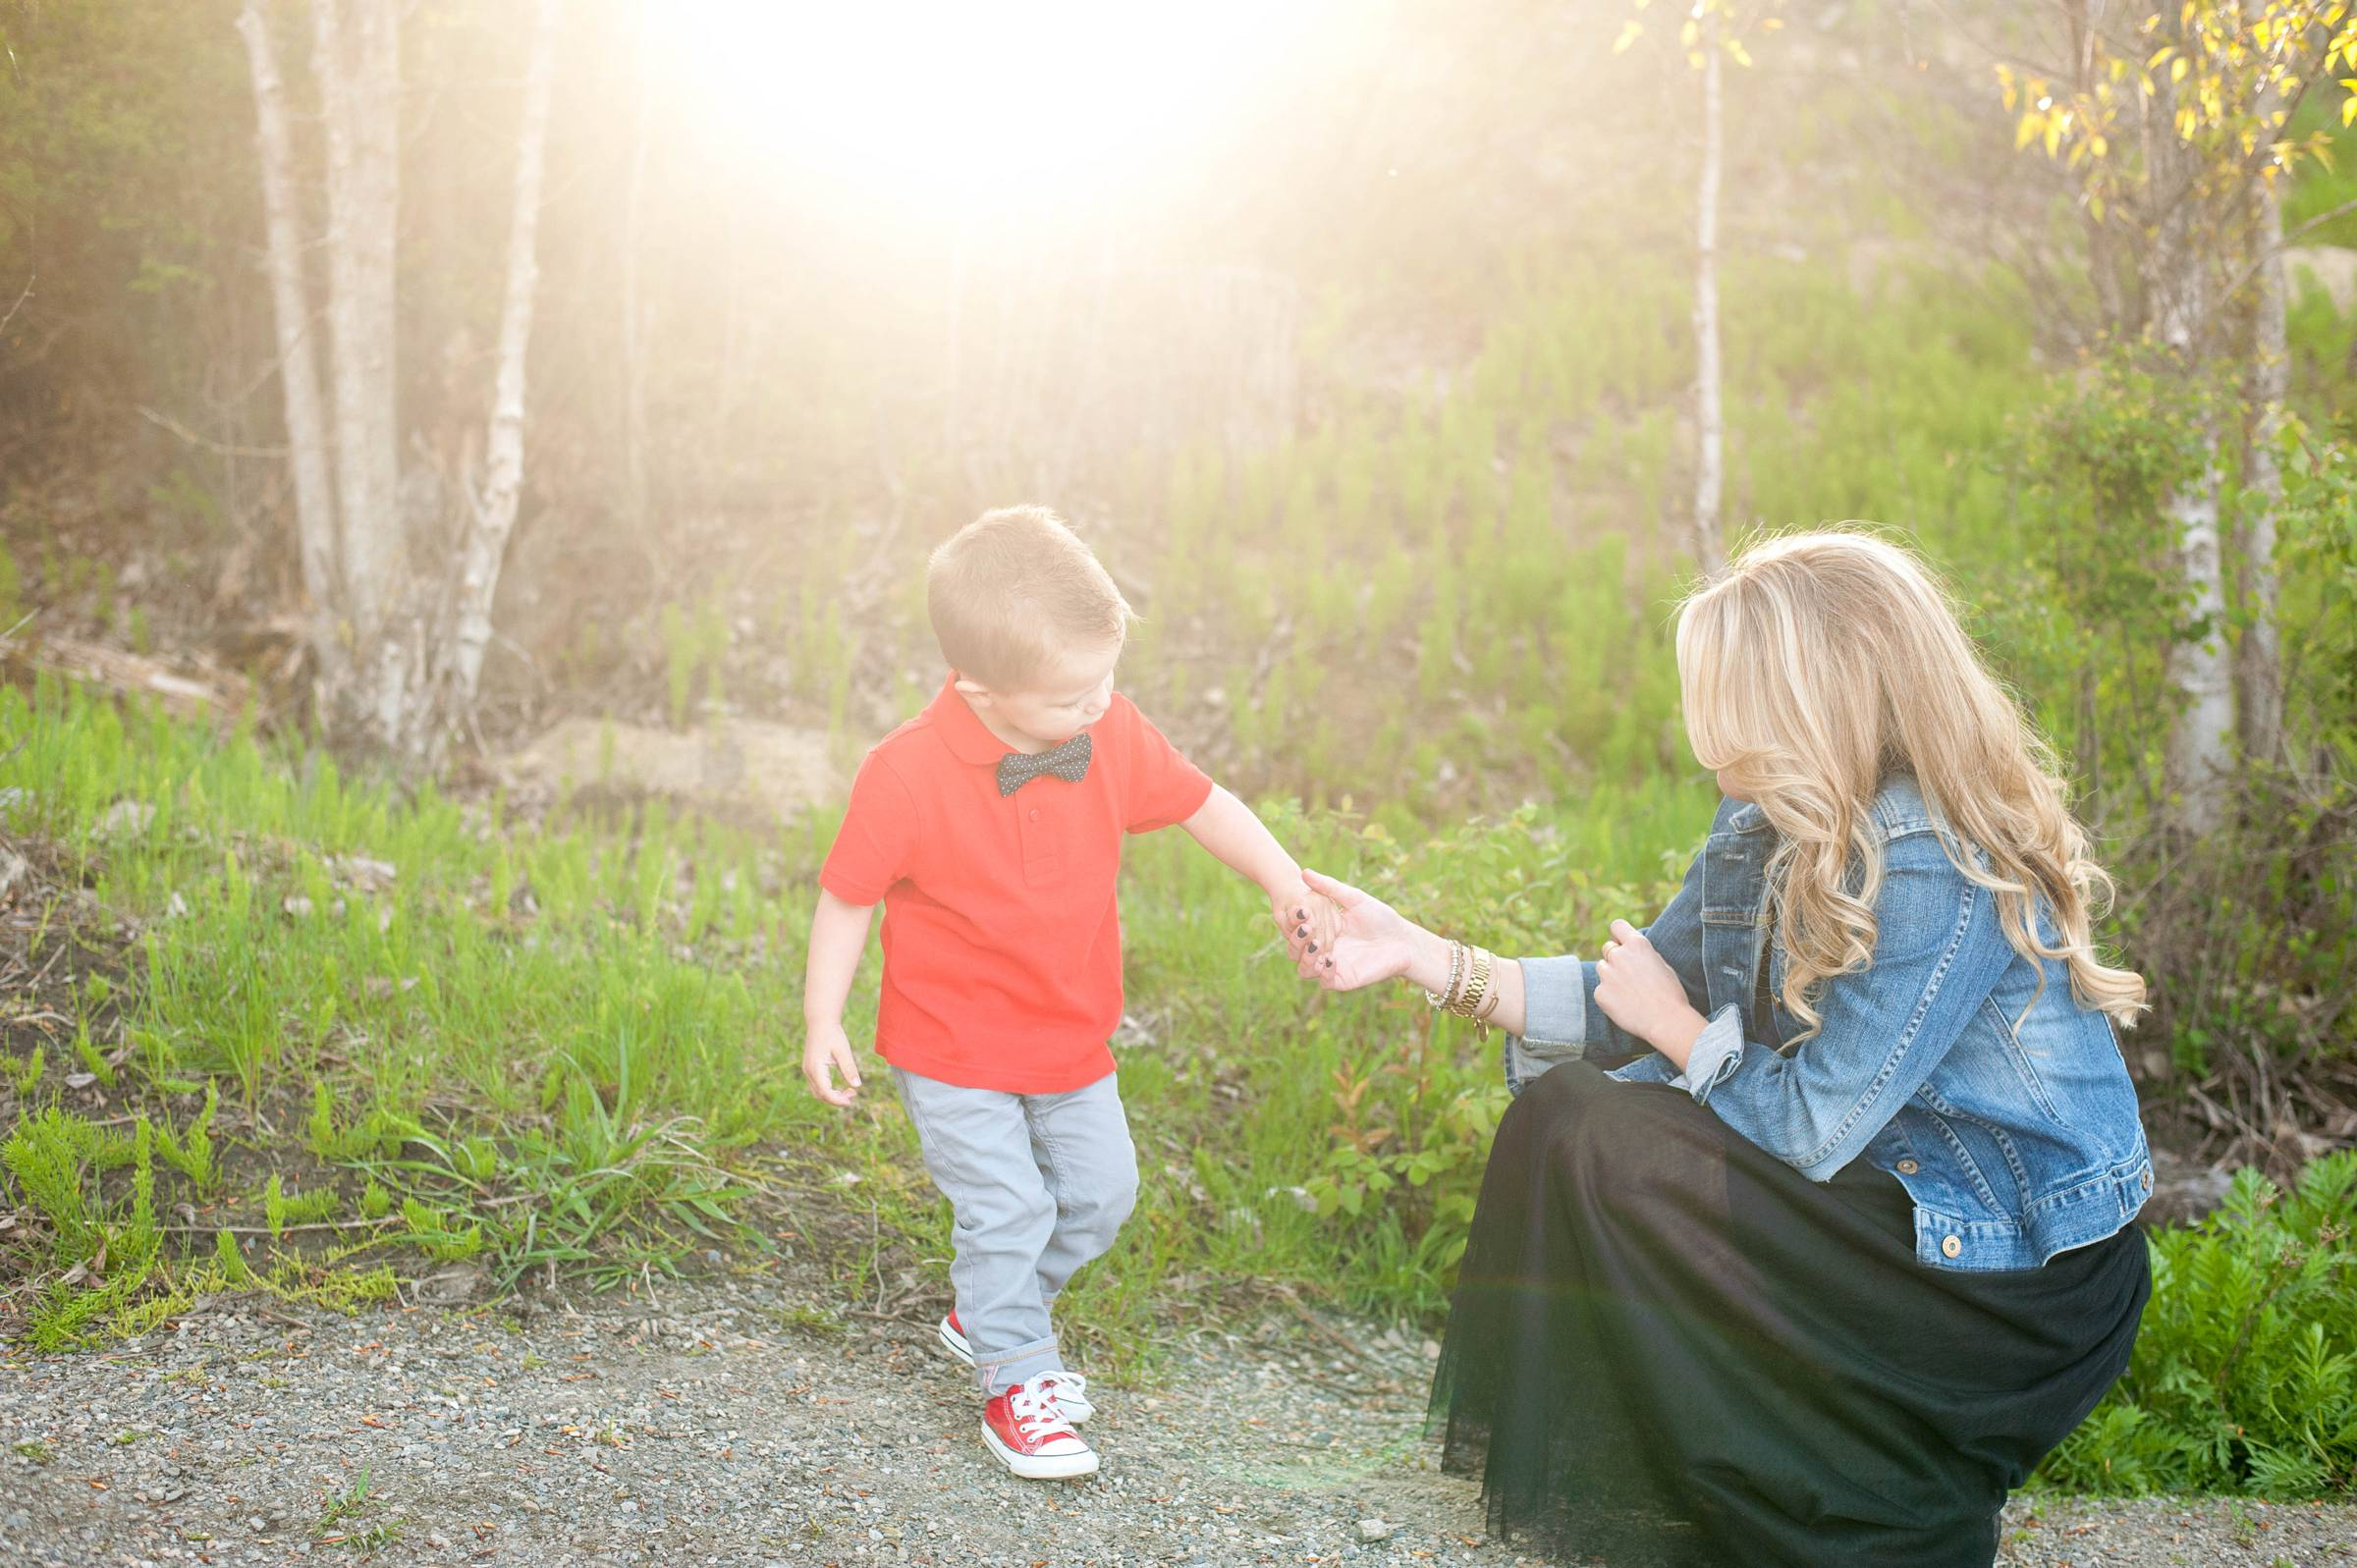 Janel-Gion-Photography-and-Design-Mommy-and-Me-Summer-Photo-Session-Sandpoint-Idaho_0005.jpg